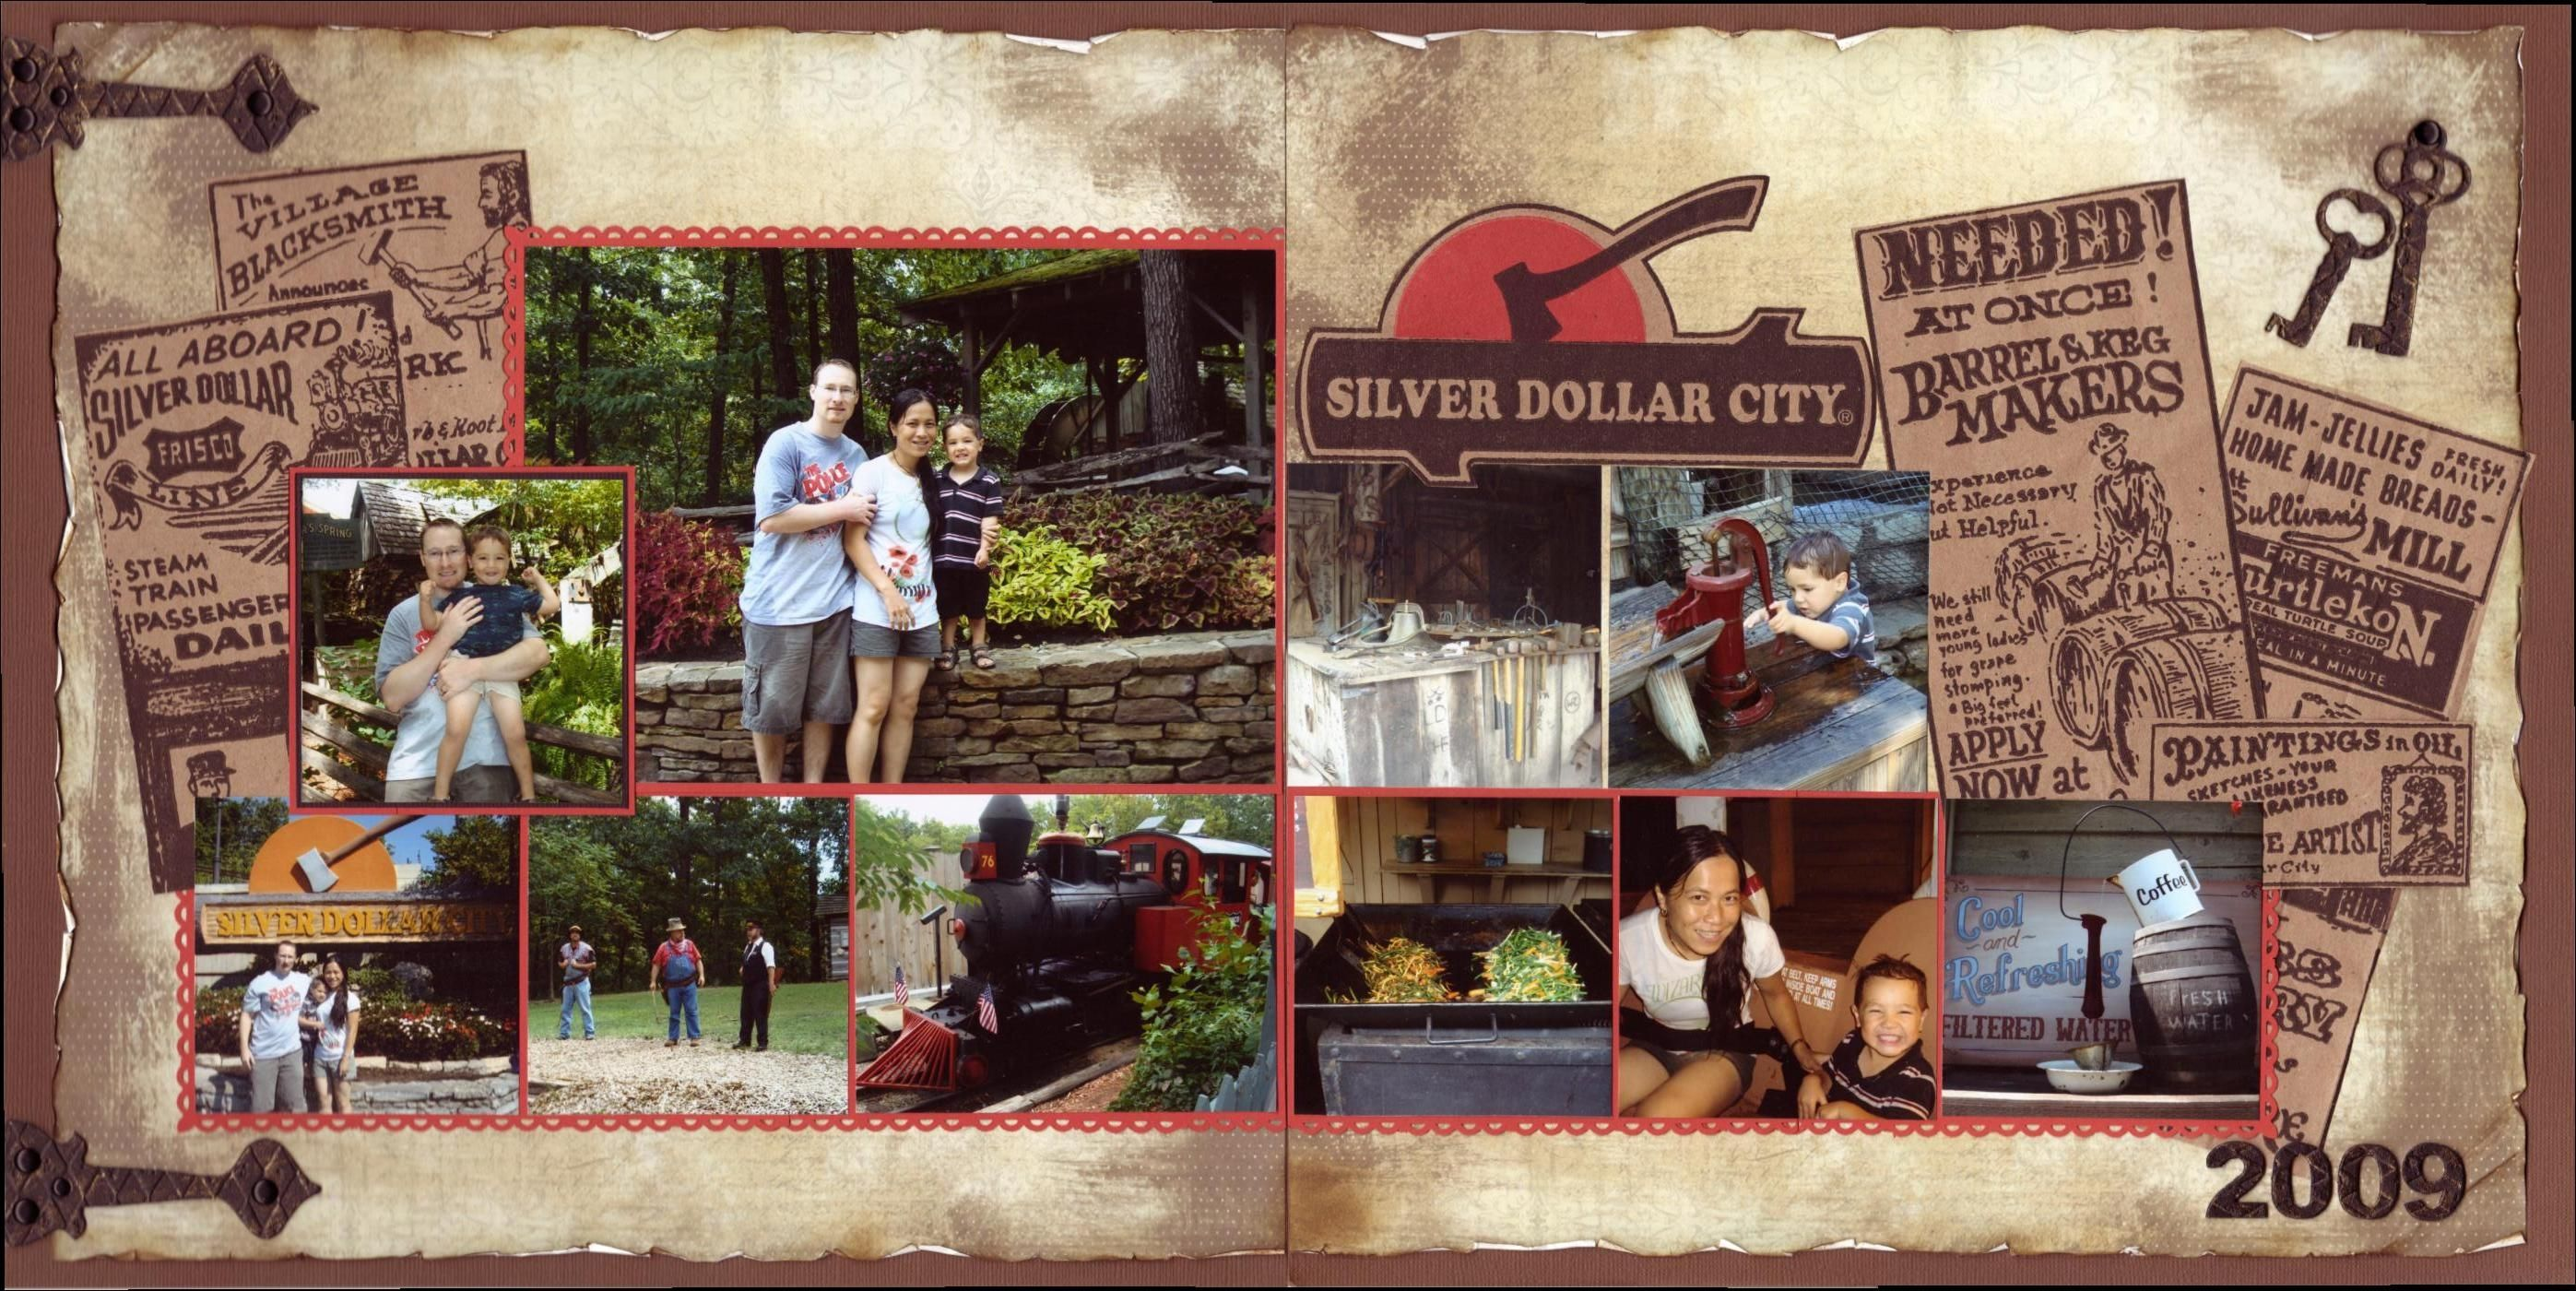 How to scrapbook yahoo - Scrapbook Layouts For Silver Dollar City Yahoo Image Search Results